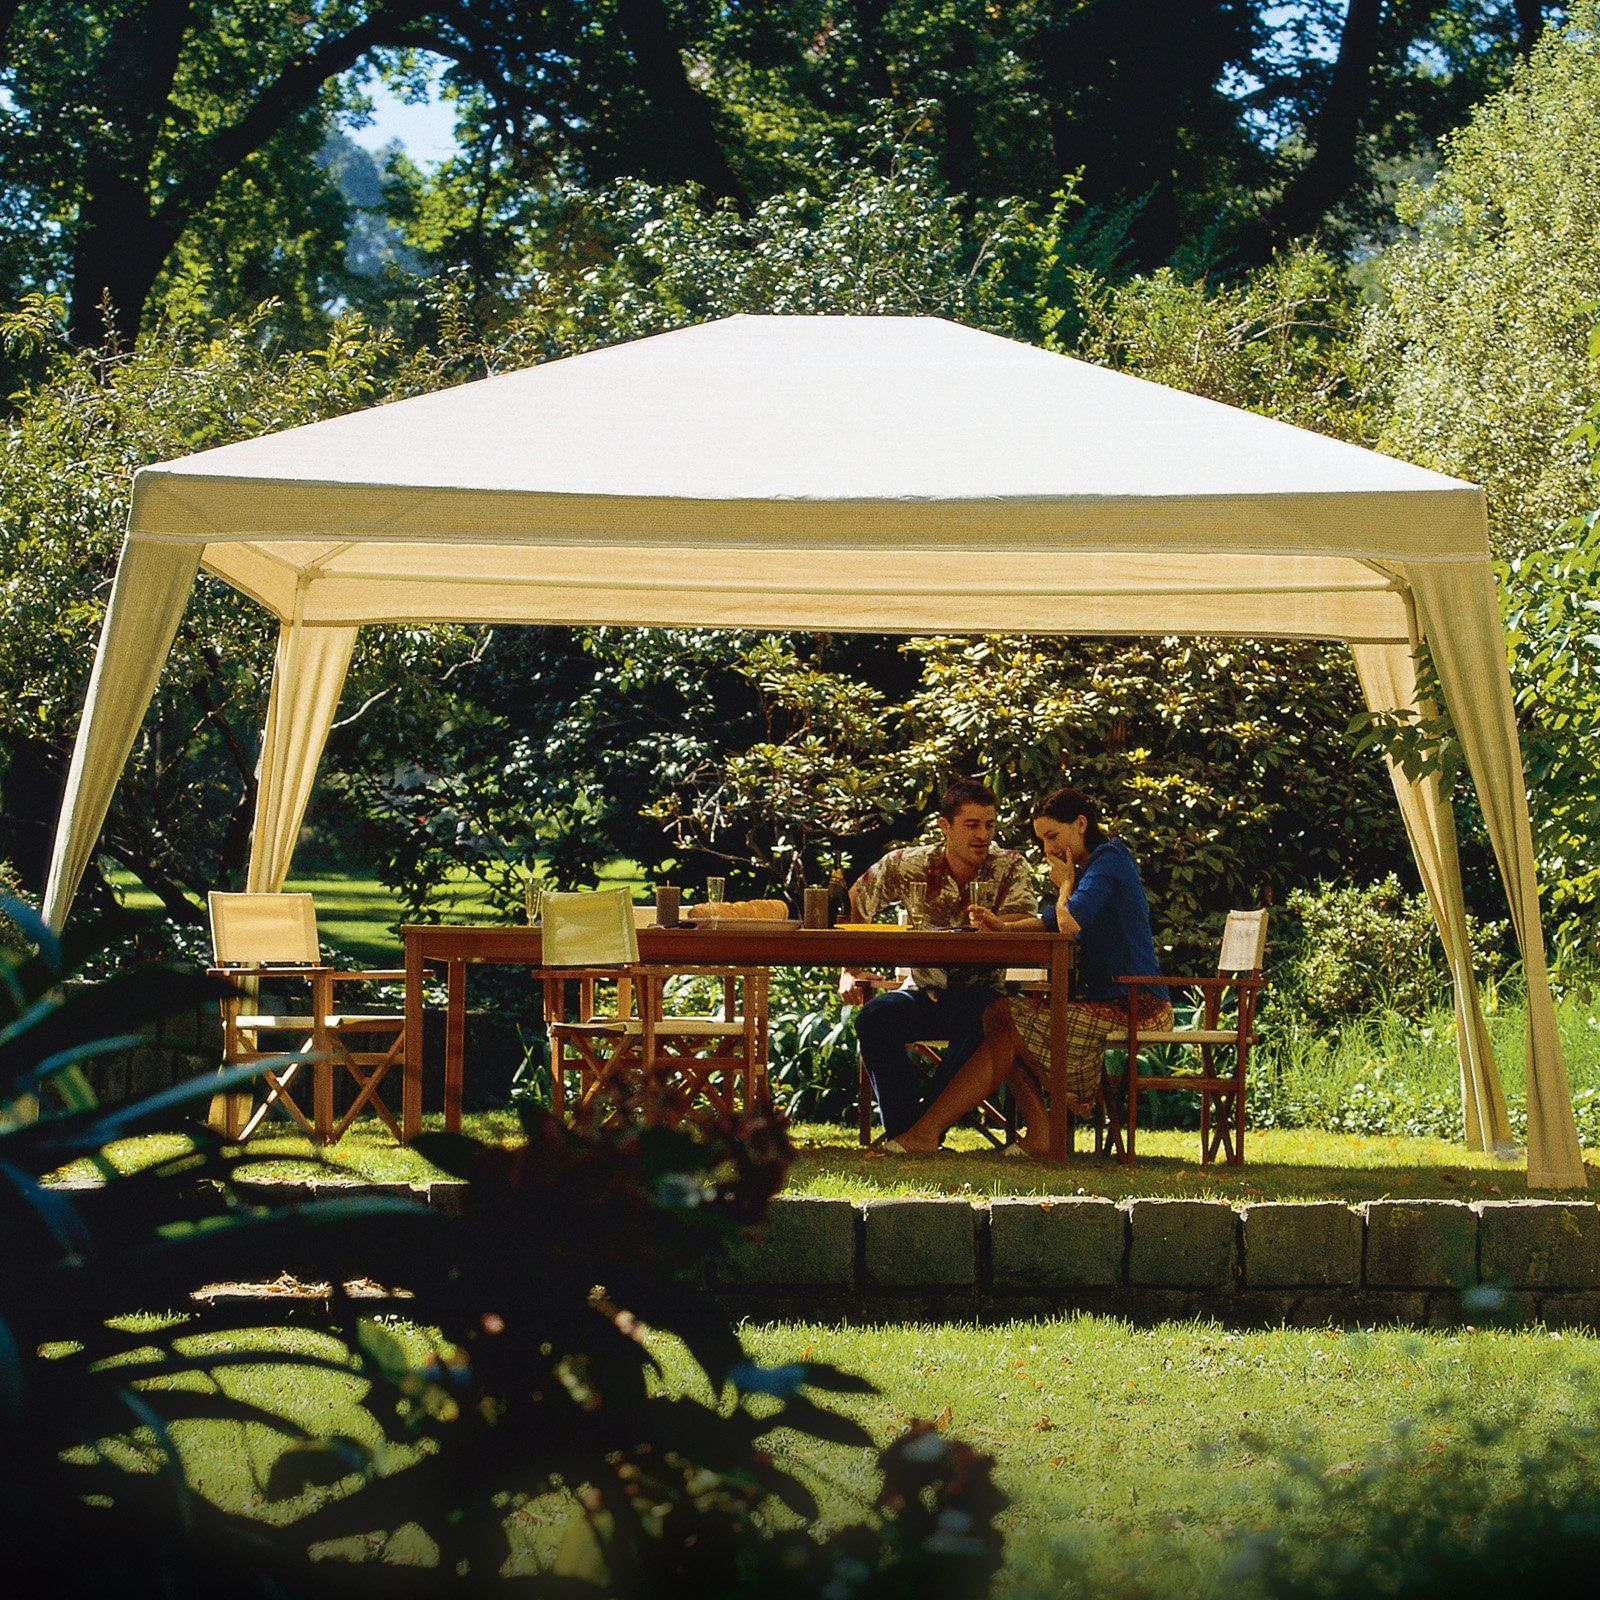 coolaroo 10 x 12 ft aluminum gazebo canopy 446703 products